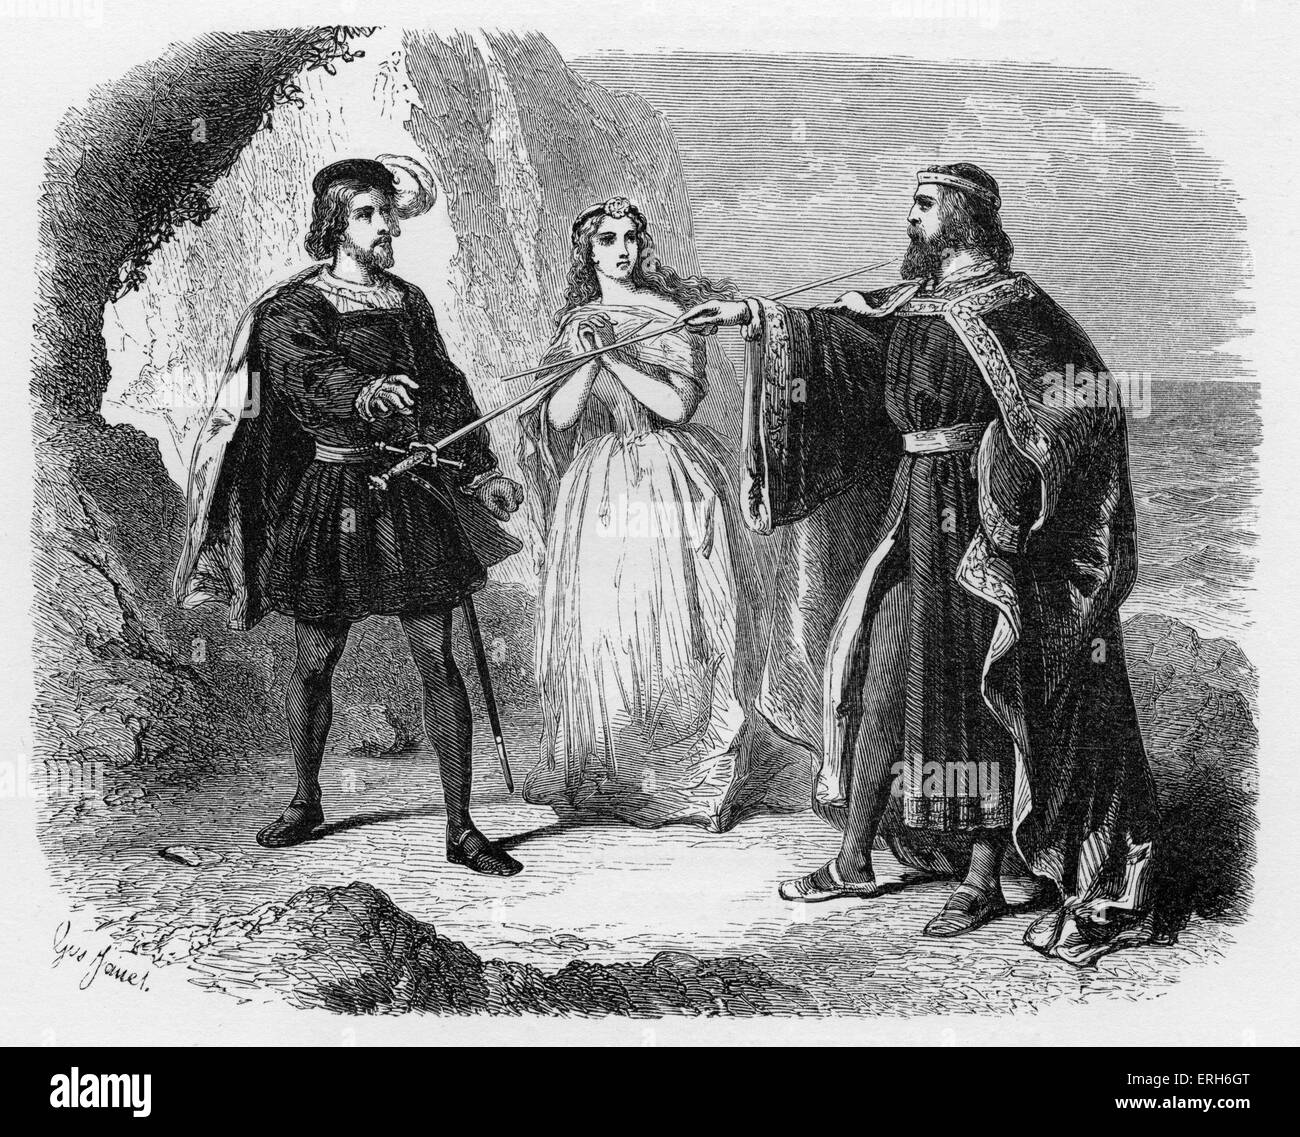 an act analysis of william shakespeares the tempest The tempest act 2 scene 1 william shakespeare album the tempest the tempest act 2 scene 1 lyrics scene i another part of the island the tempest act 2 scene 2.